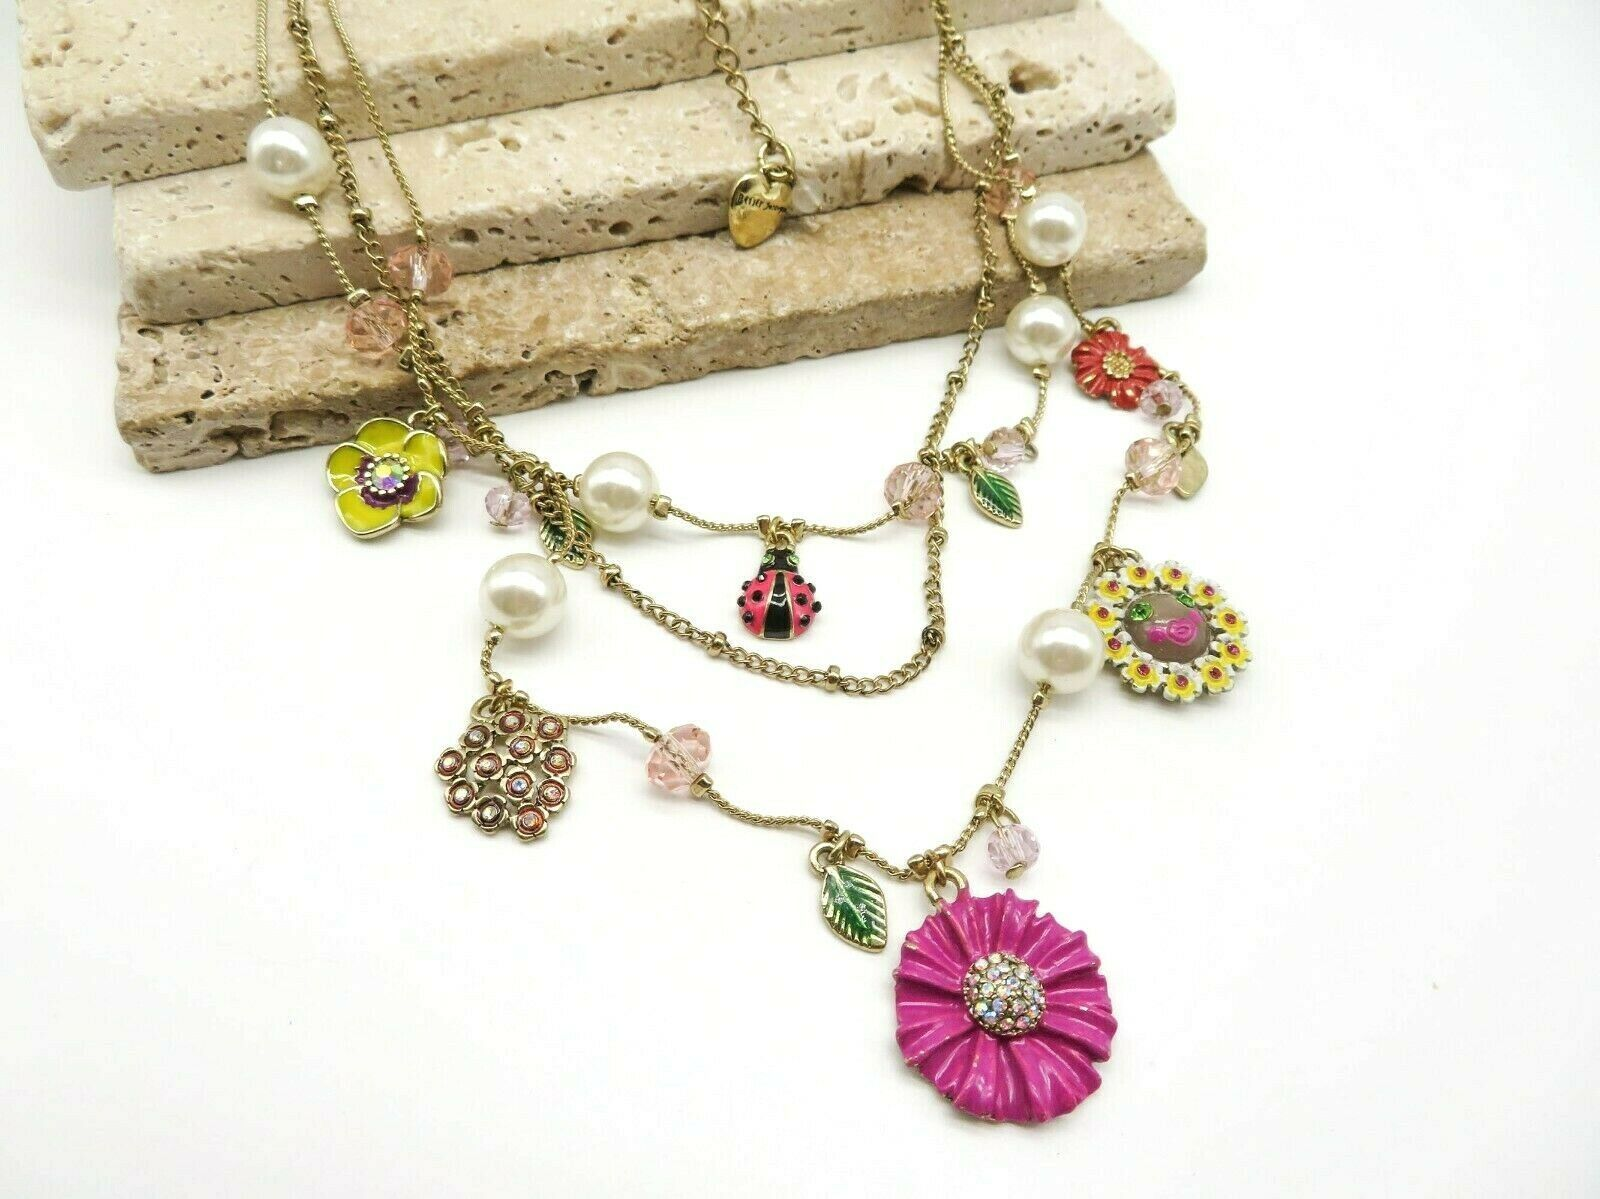 Betsey Johnson Layered Gold Floral Charm Necklace H34 - $36.99